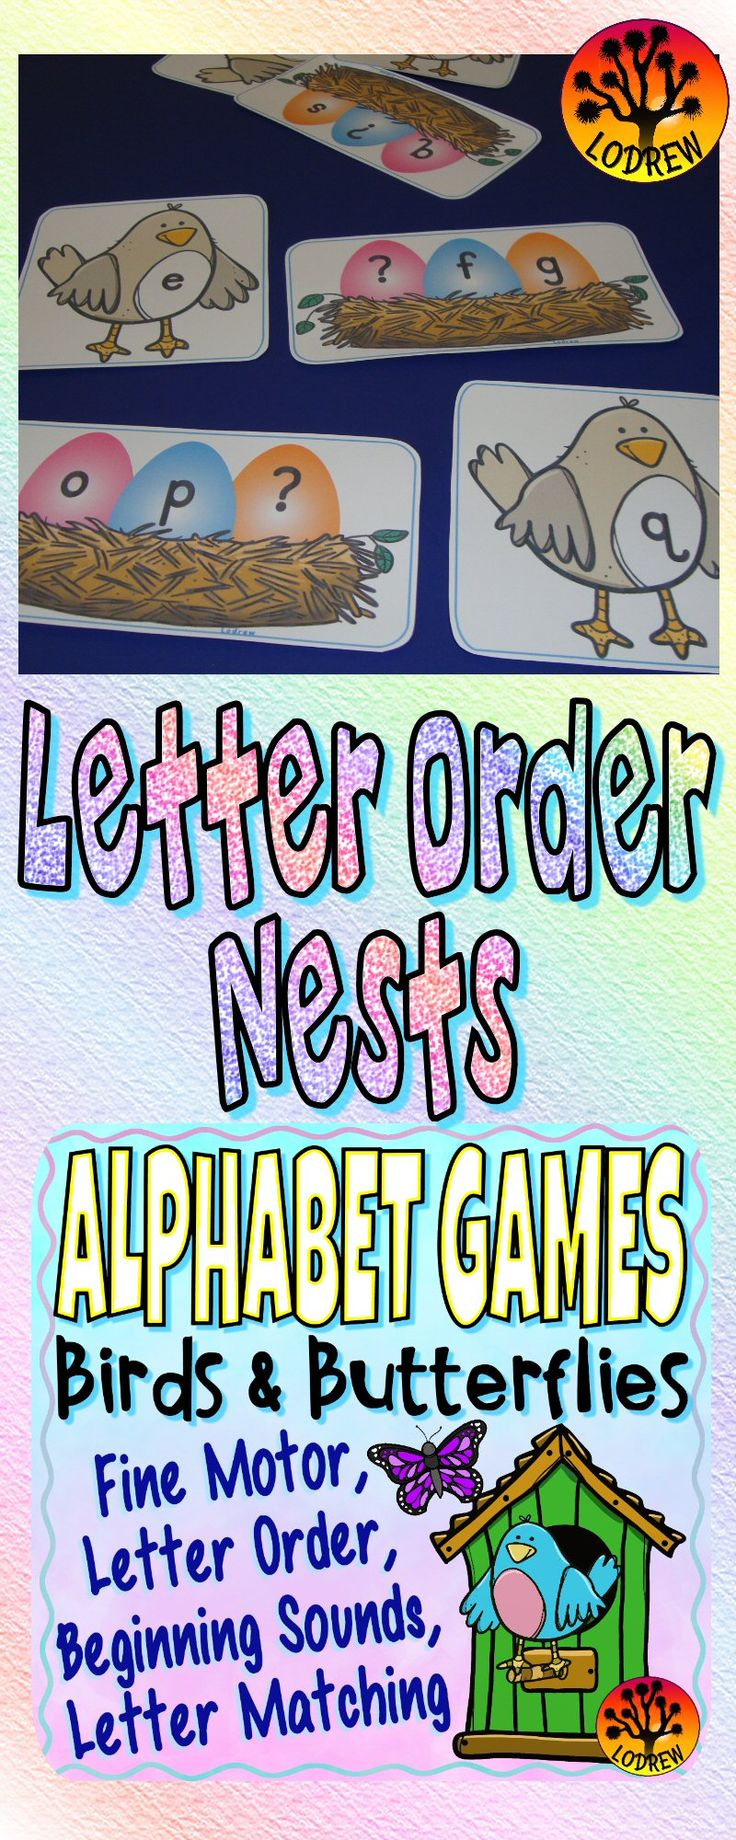 62 pages of birds and butterflies alphabet games. Activities include literacy, alphabet, letters, beginning sounds, letter order, letter matching, fine motor, word matching, visual discrimination, bundle, uppercase, lowercase, literacy centers, spring activities, insects, bugs, spring centers, butterfly games, etc. For kindergarten, preschool, SPED, child care, homeschool, or any early childhood setting.